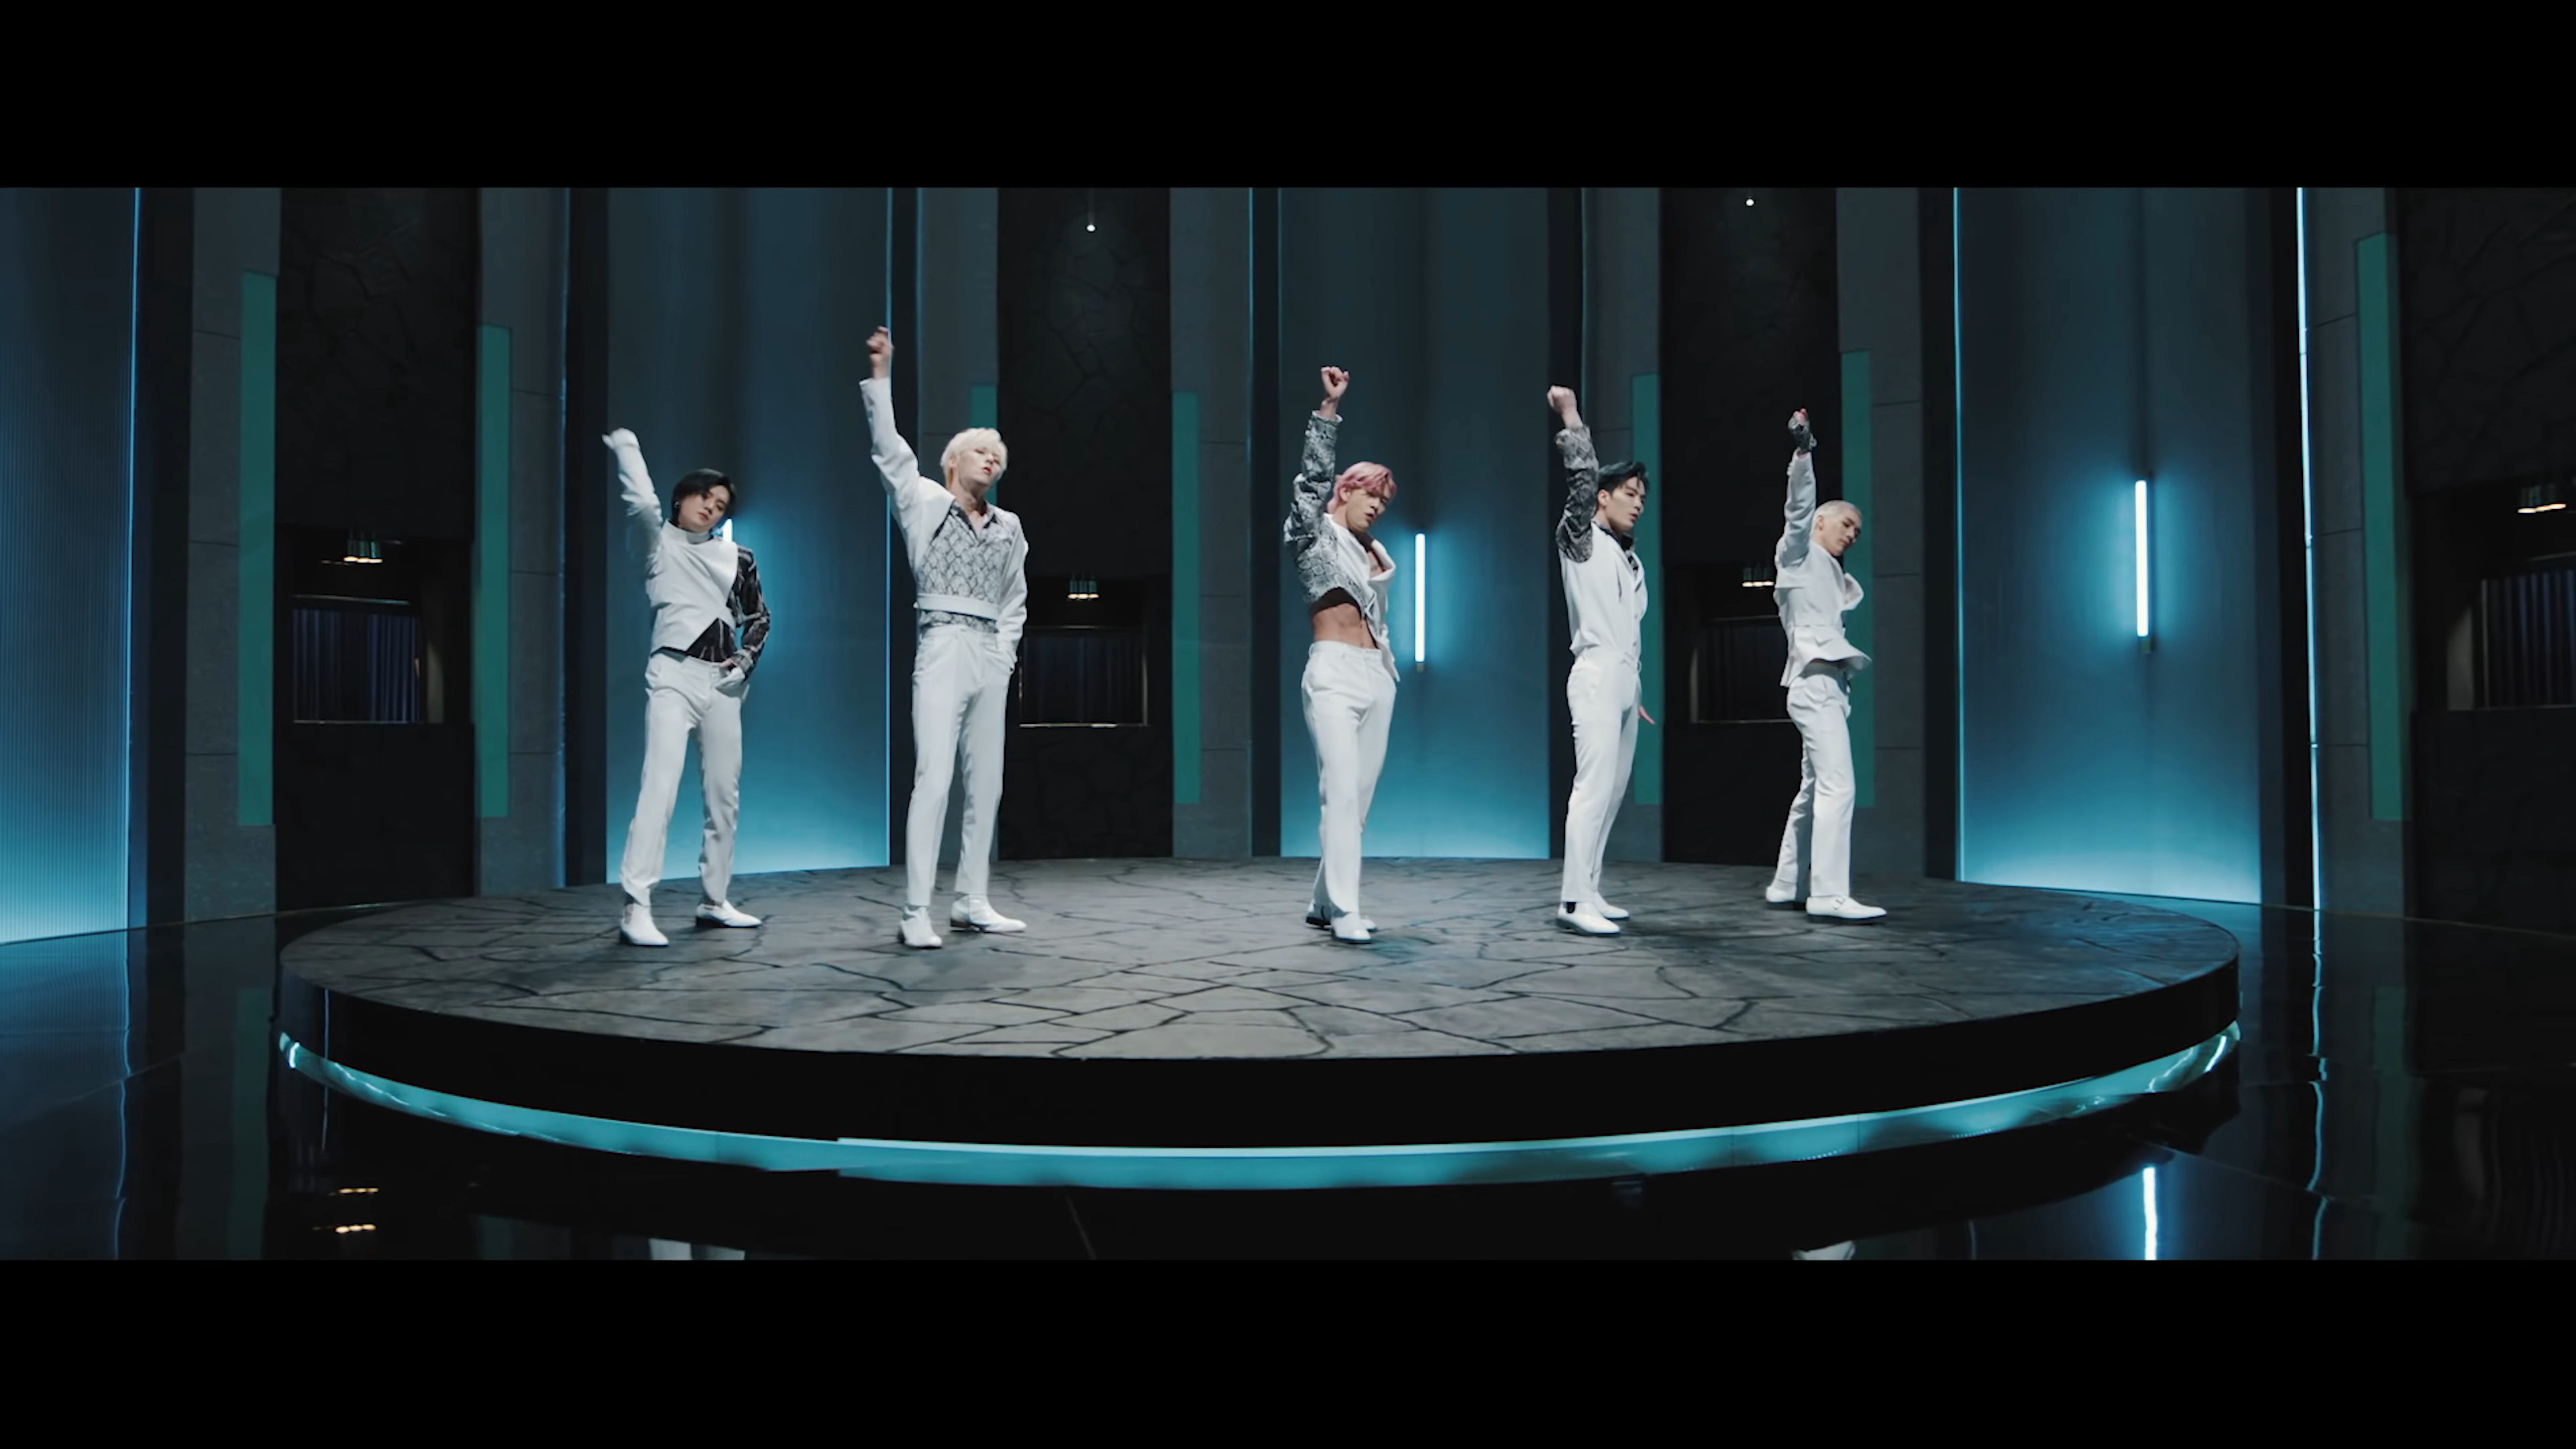 NU'EST I'm In Trouble who's who